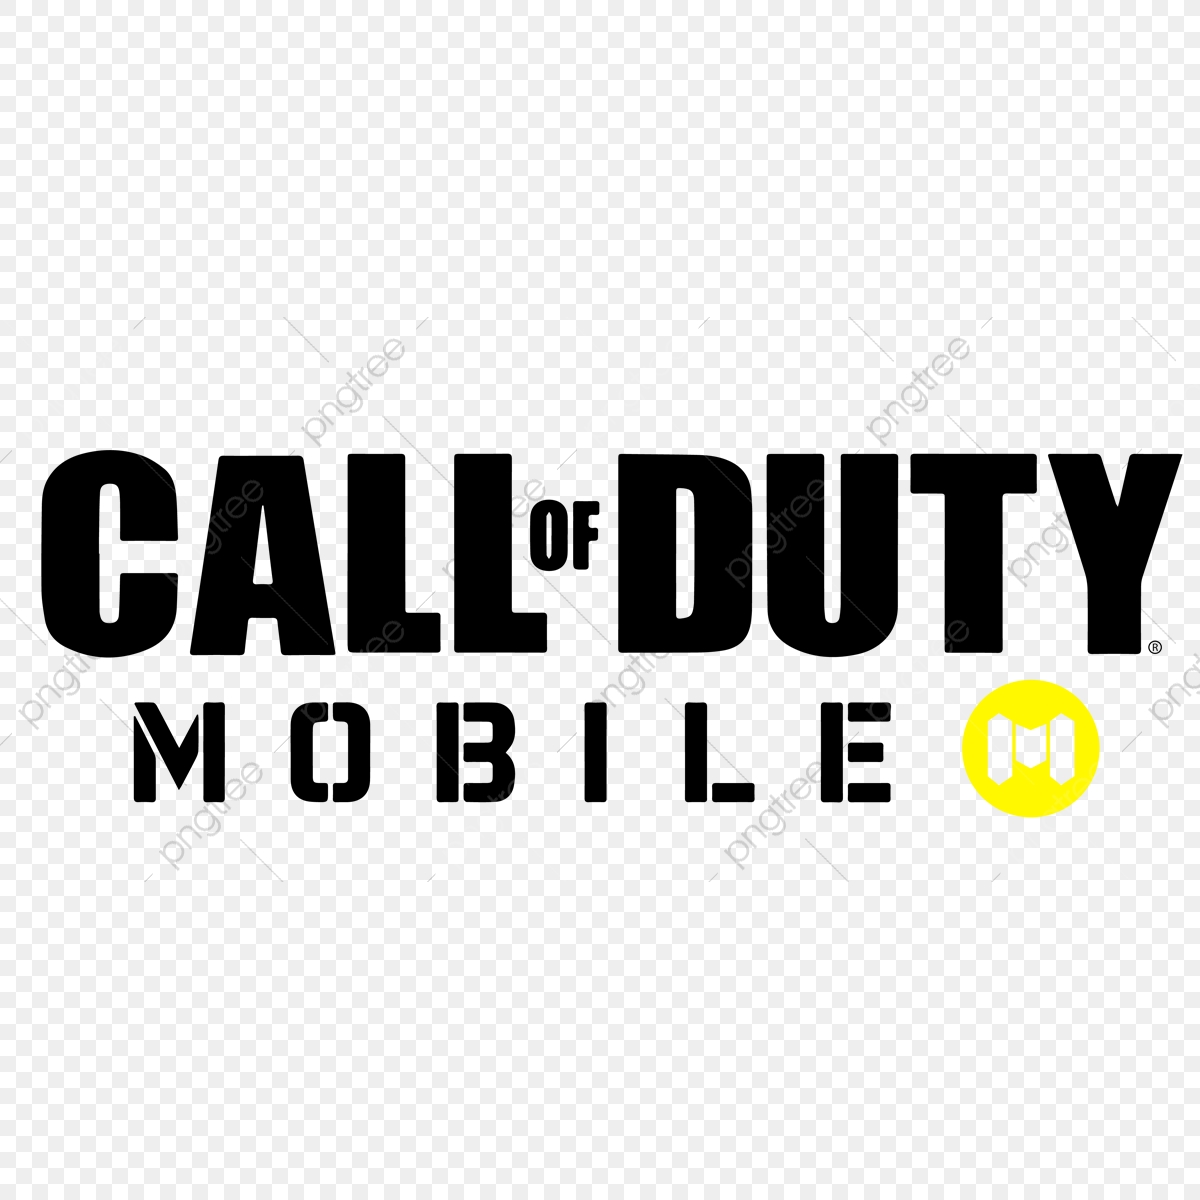 Call Of Duty Mobile Png Game And Movie